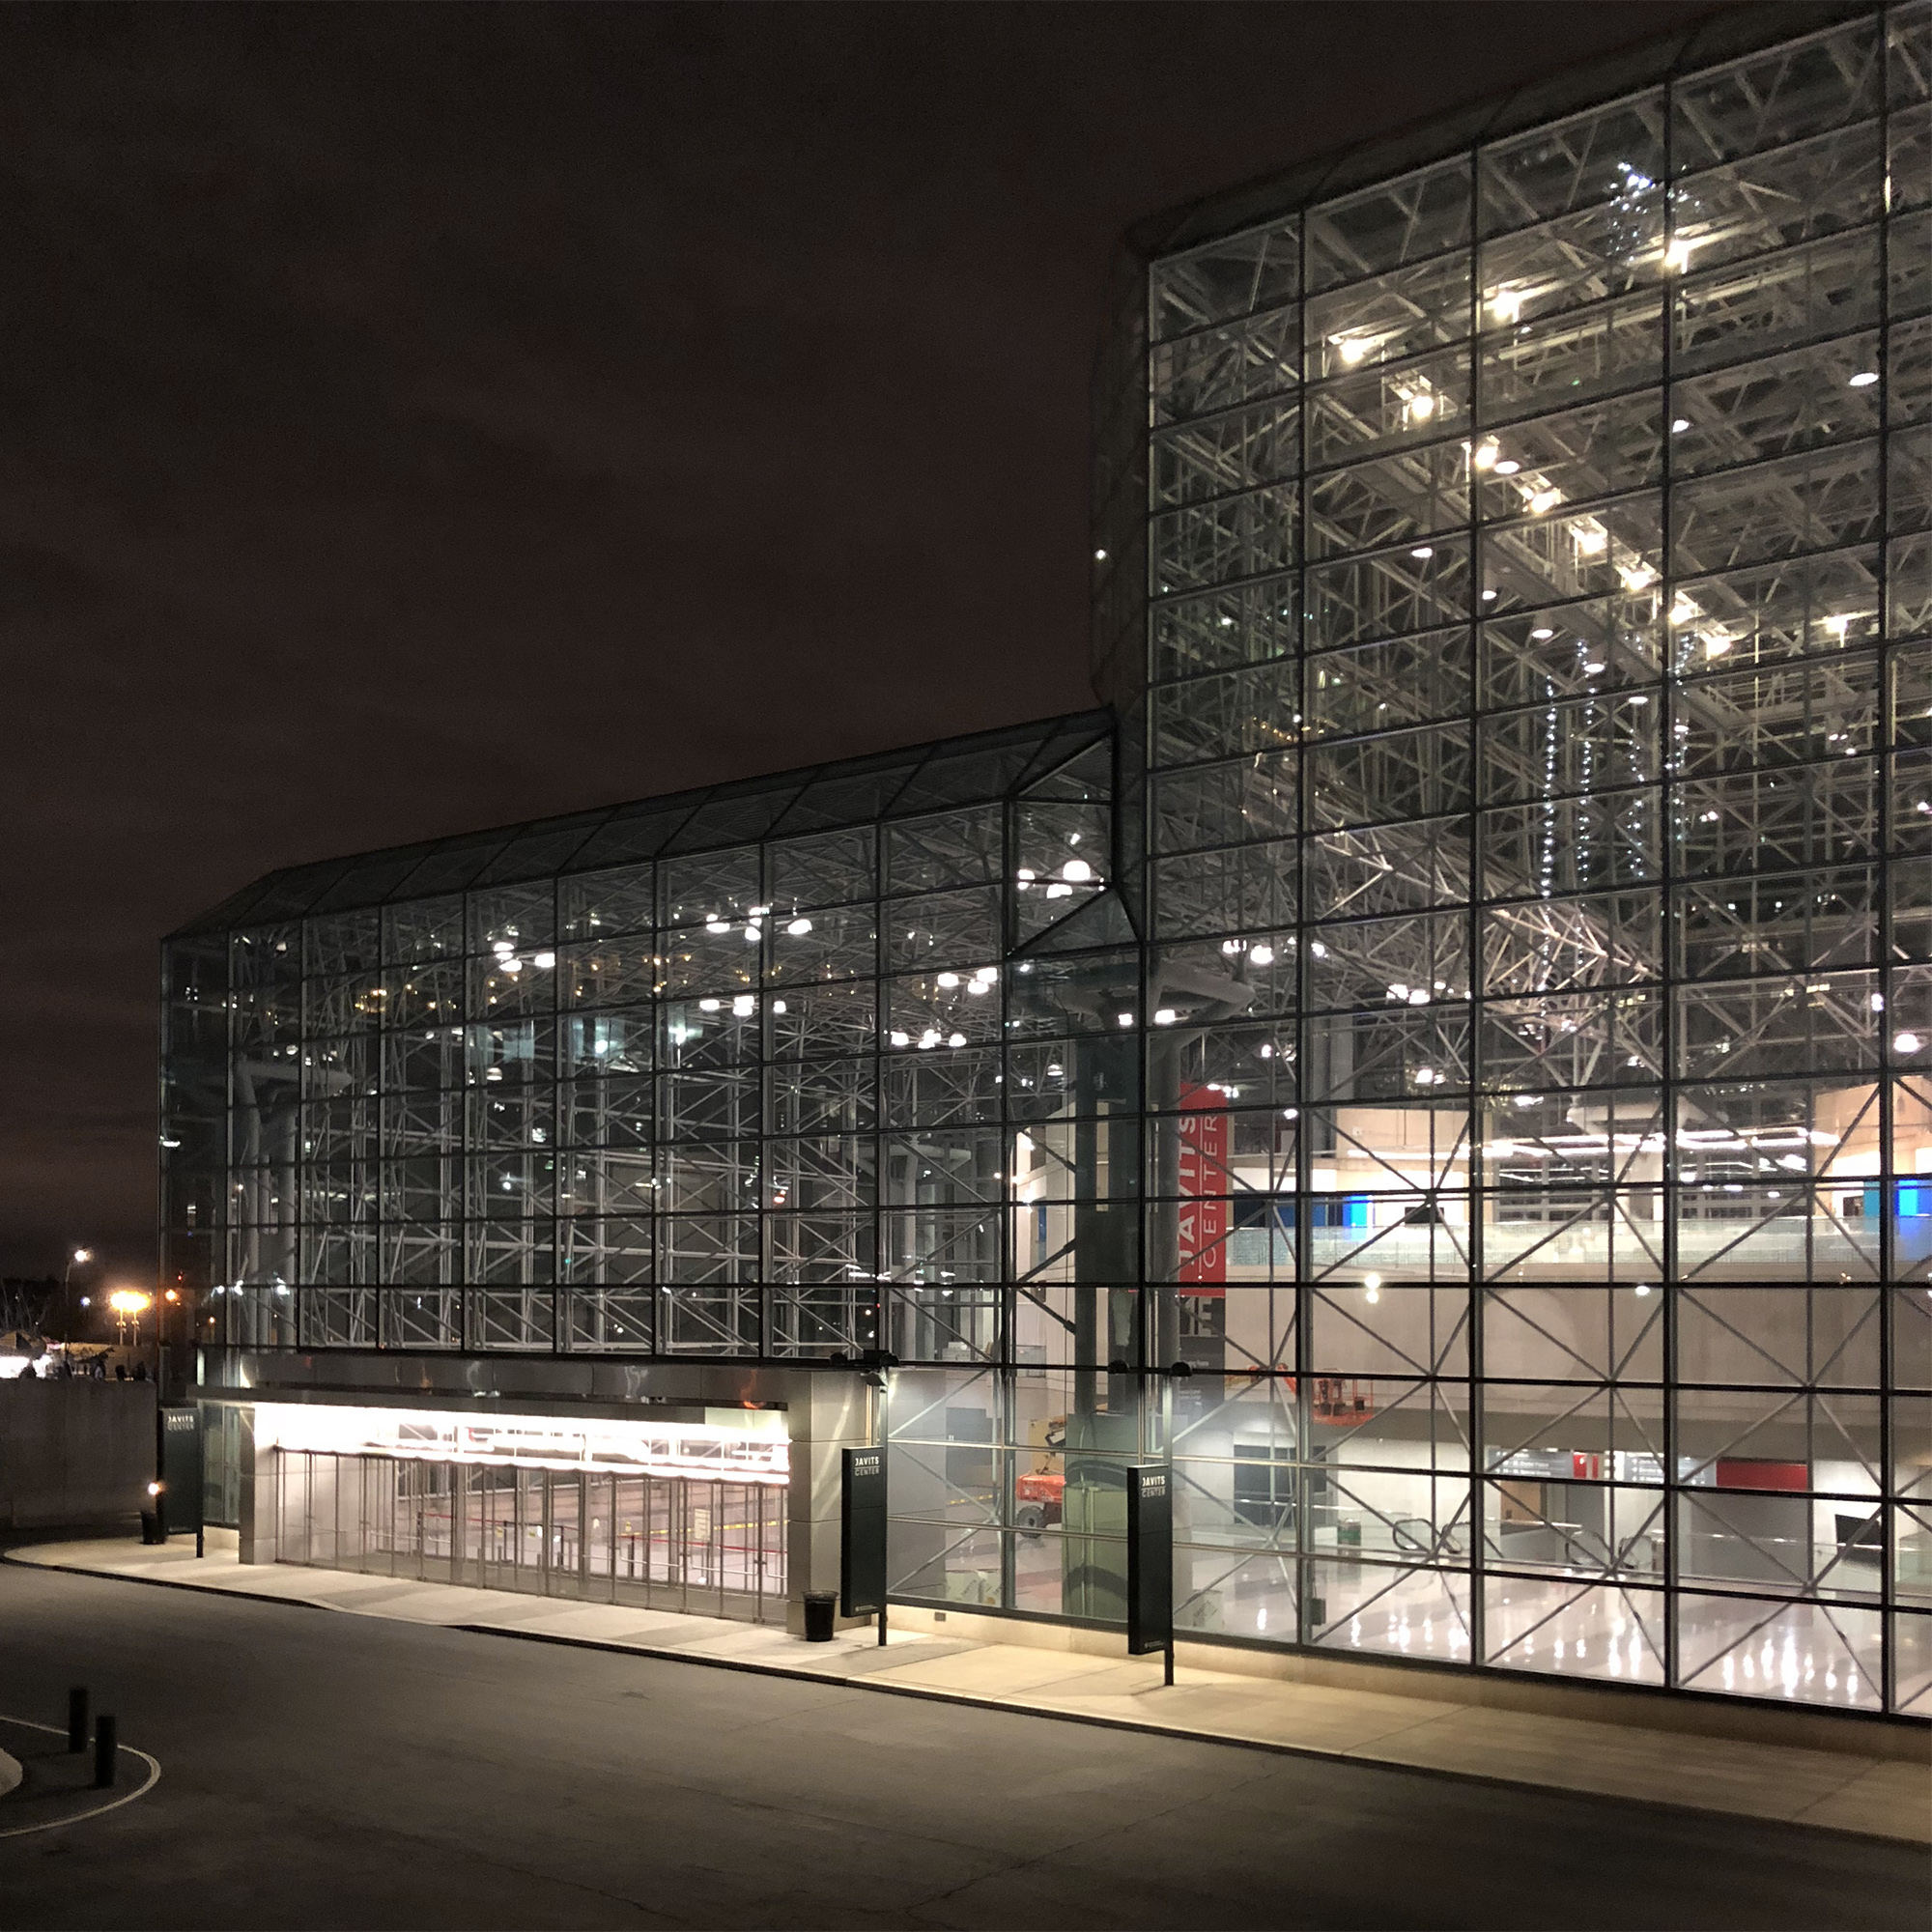 The Javits Center in New York. Designed by Pei, Cobb, Freed.